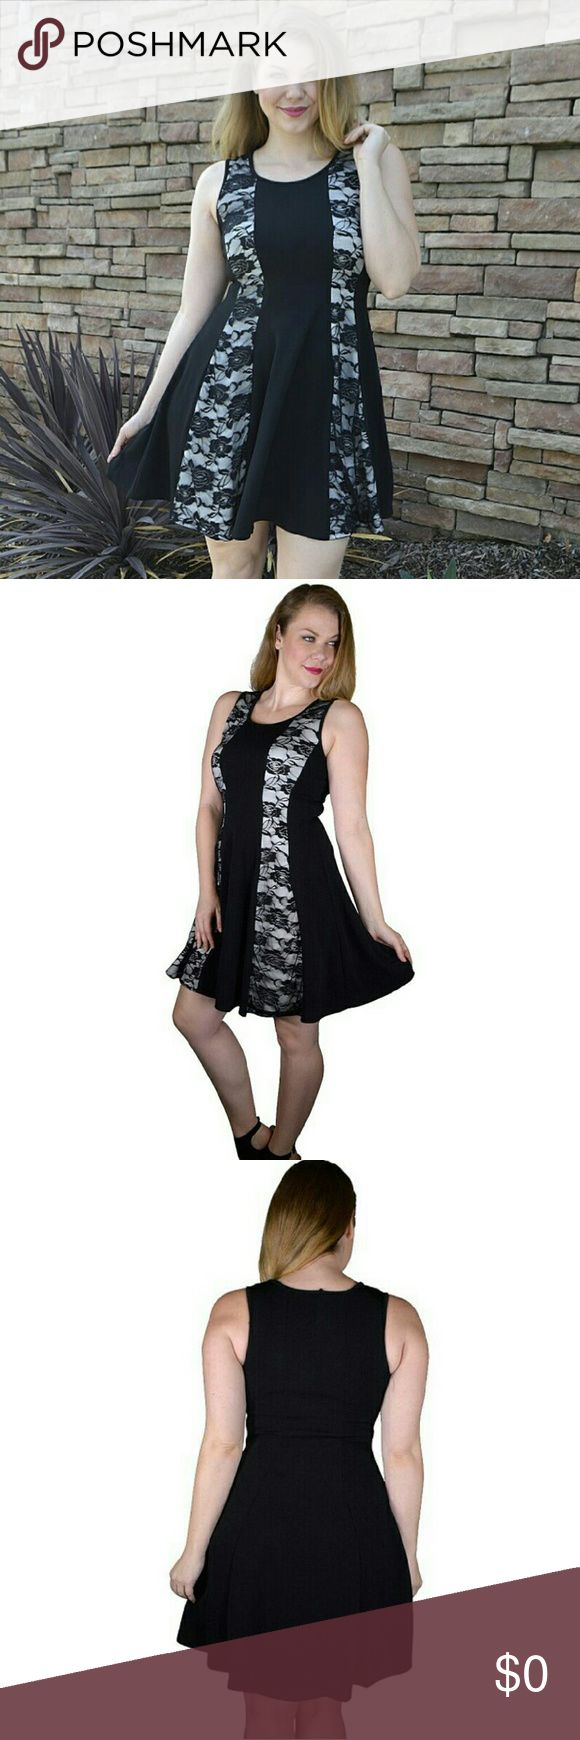 Plus Size Lace Paneled Round Neck Sleeveless dress This skater dress is styled in a solid black color scheme with floral-detailed lace panels gracing both sides in a vertical design. Featuring a neatly defined round neckline, this solid skater dress exhibits crisp pleats that nicely complement the polyester and spandex combination to render an impressive fitting to the user.    Made in U.S.A 1XL.2XL.3XL 96% Polyester 4% spandex TRUE TO SIZE Model is Wearing size: 1XL  Item Measurements:SIZE…